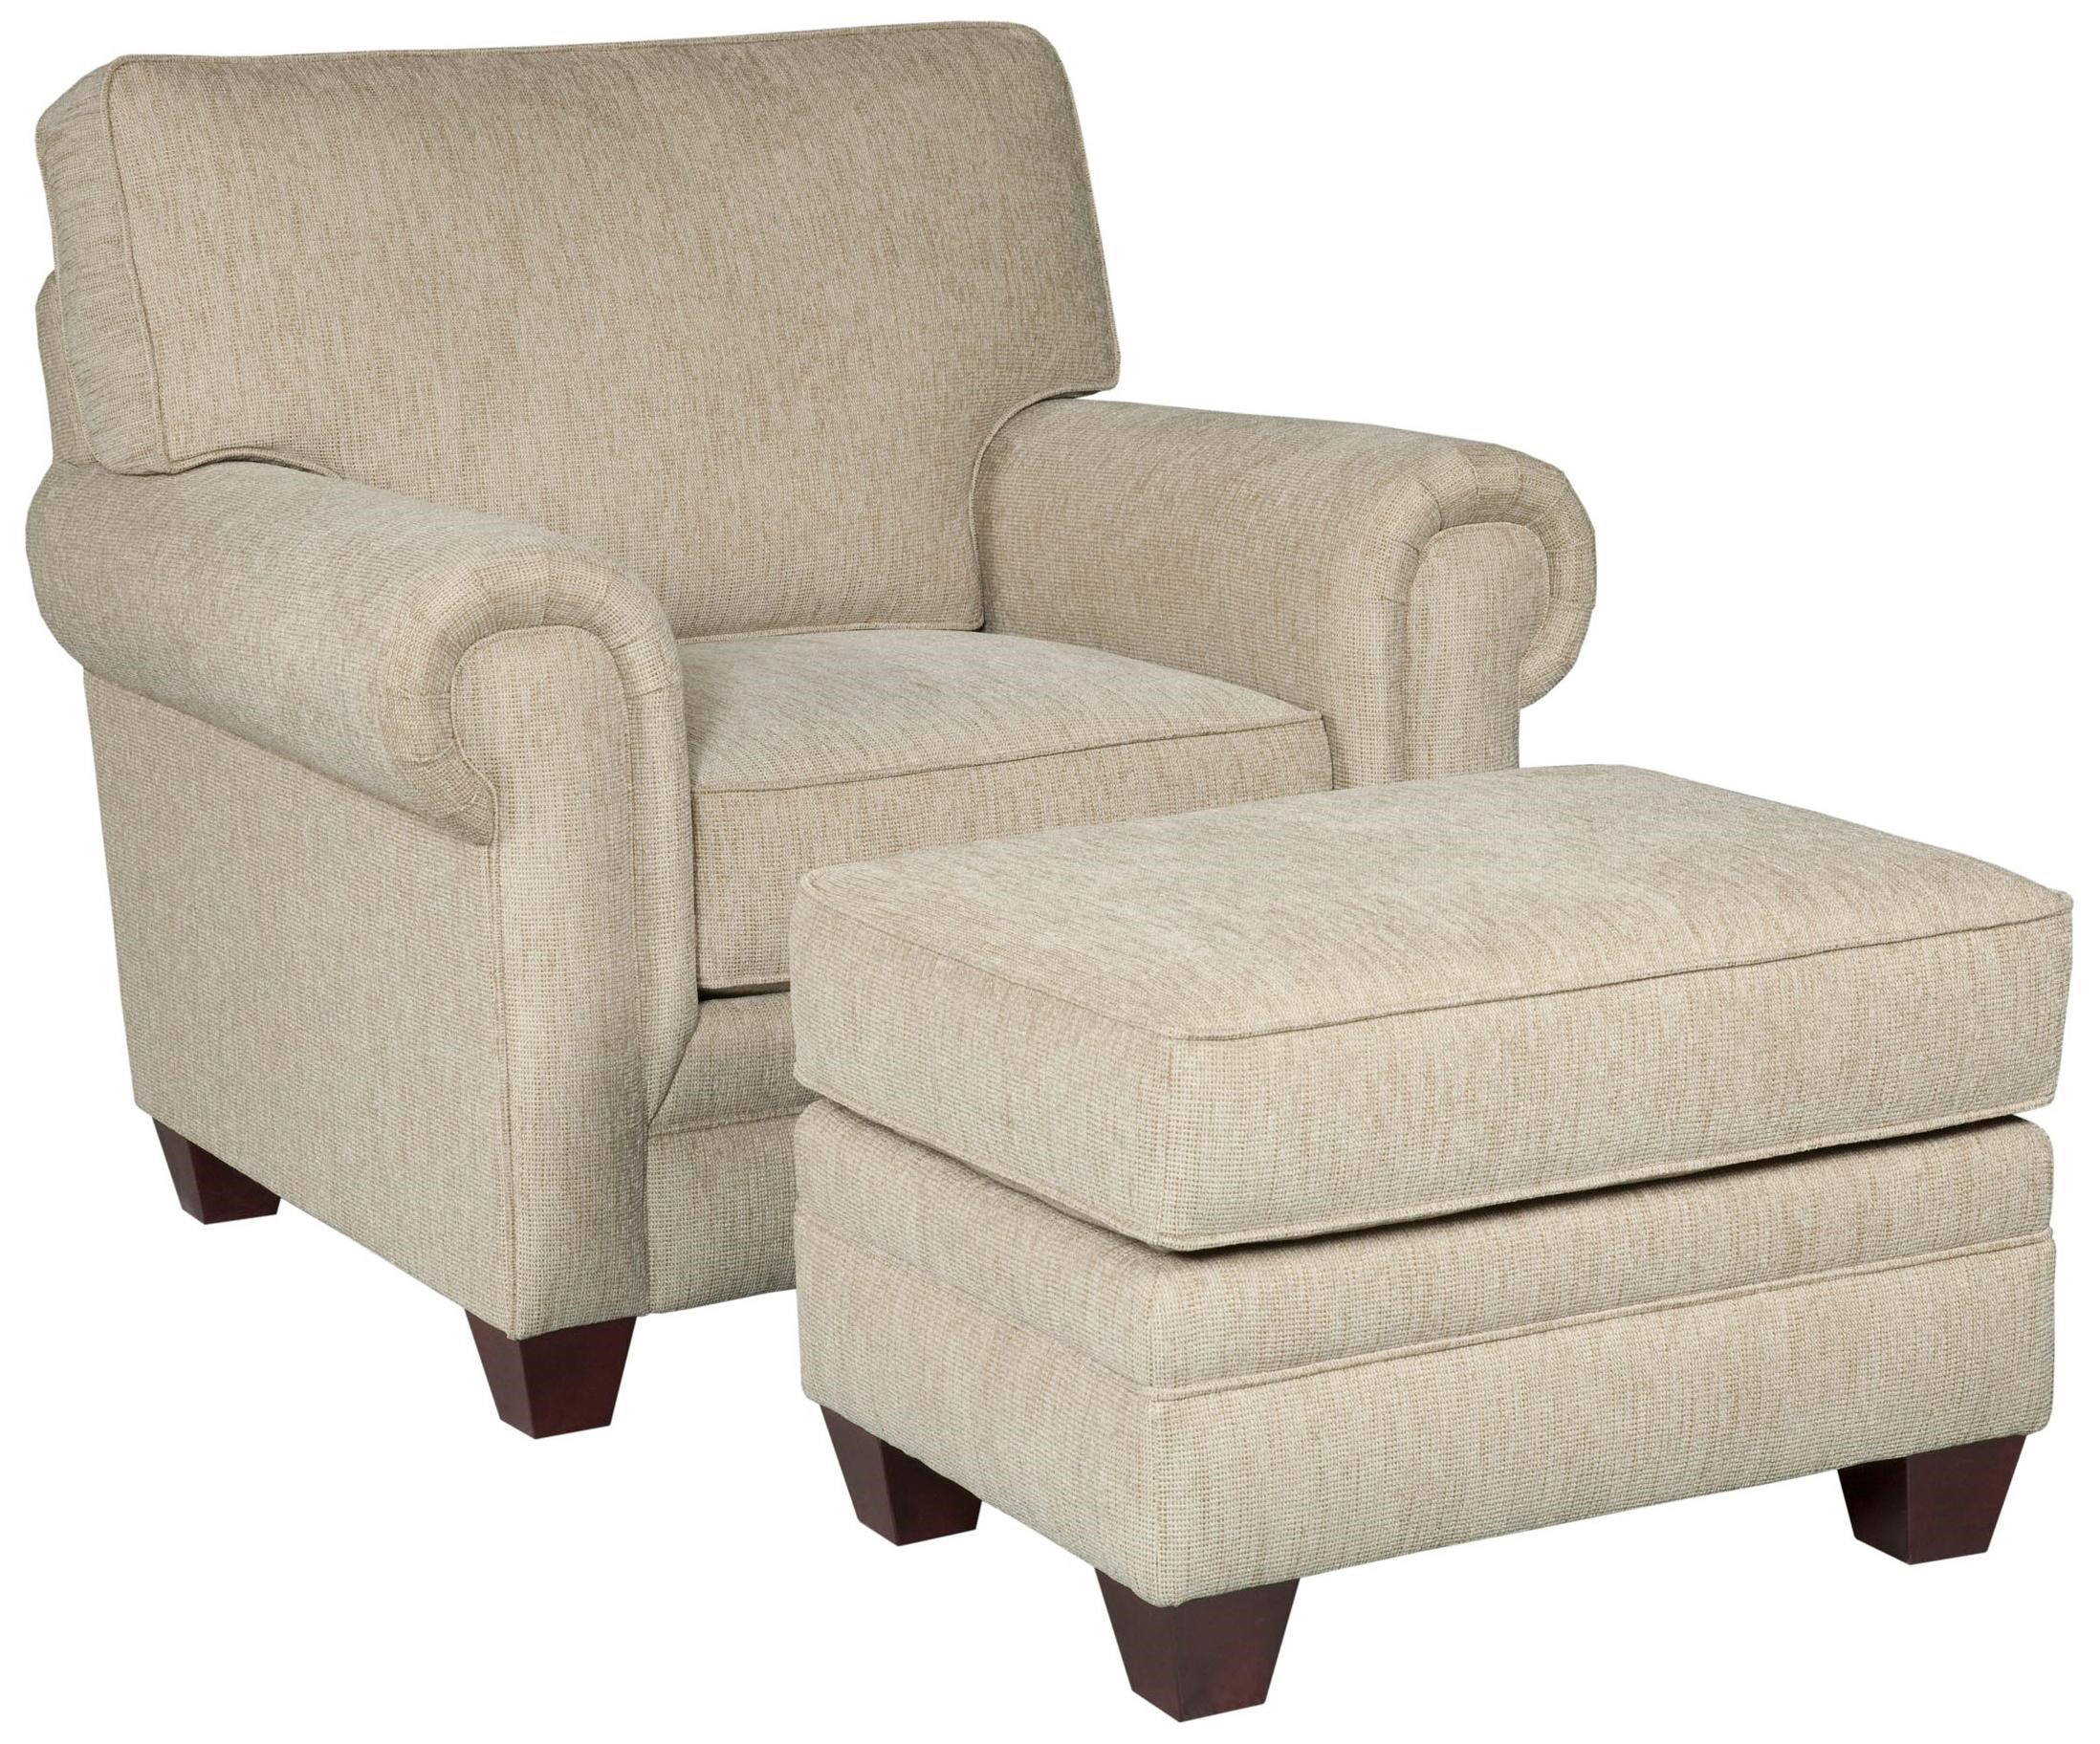 Genial Broyhill Furniture Monica Transitional Upholstered Chair And Rectangular  Ottoman